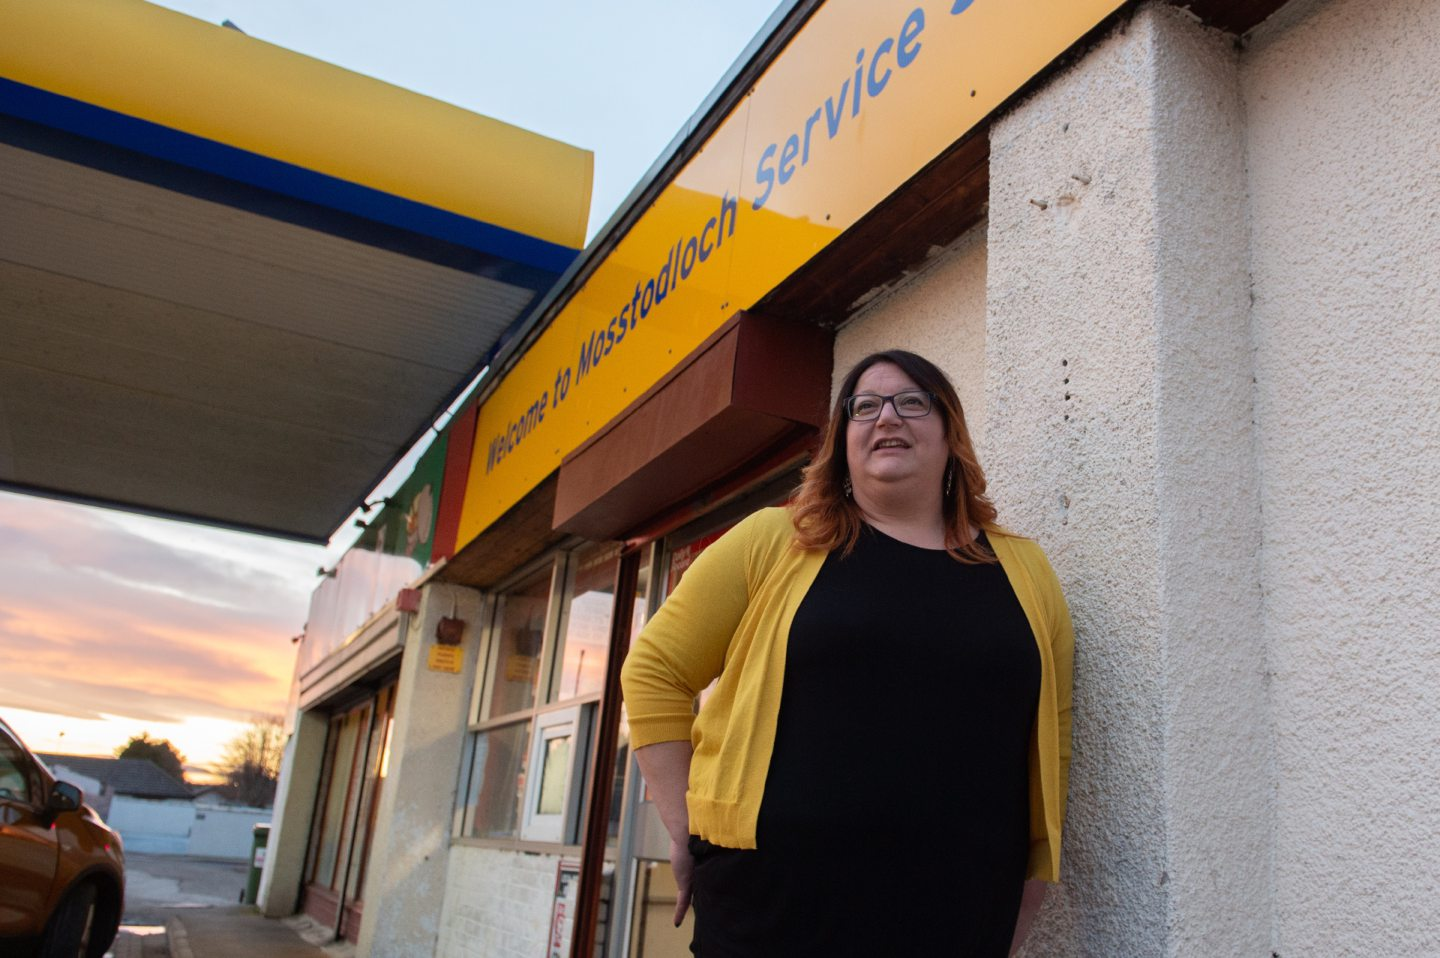 Council convener Shona Morrison at Mosstodloch garage where the new post office is to open. Pictures by Jason Hedges.